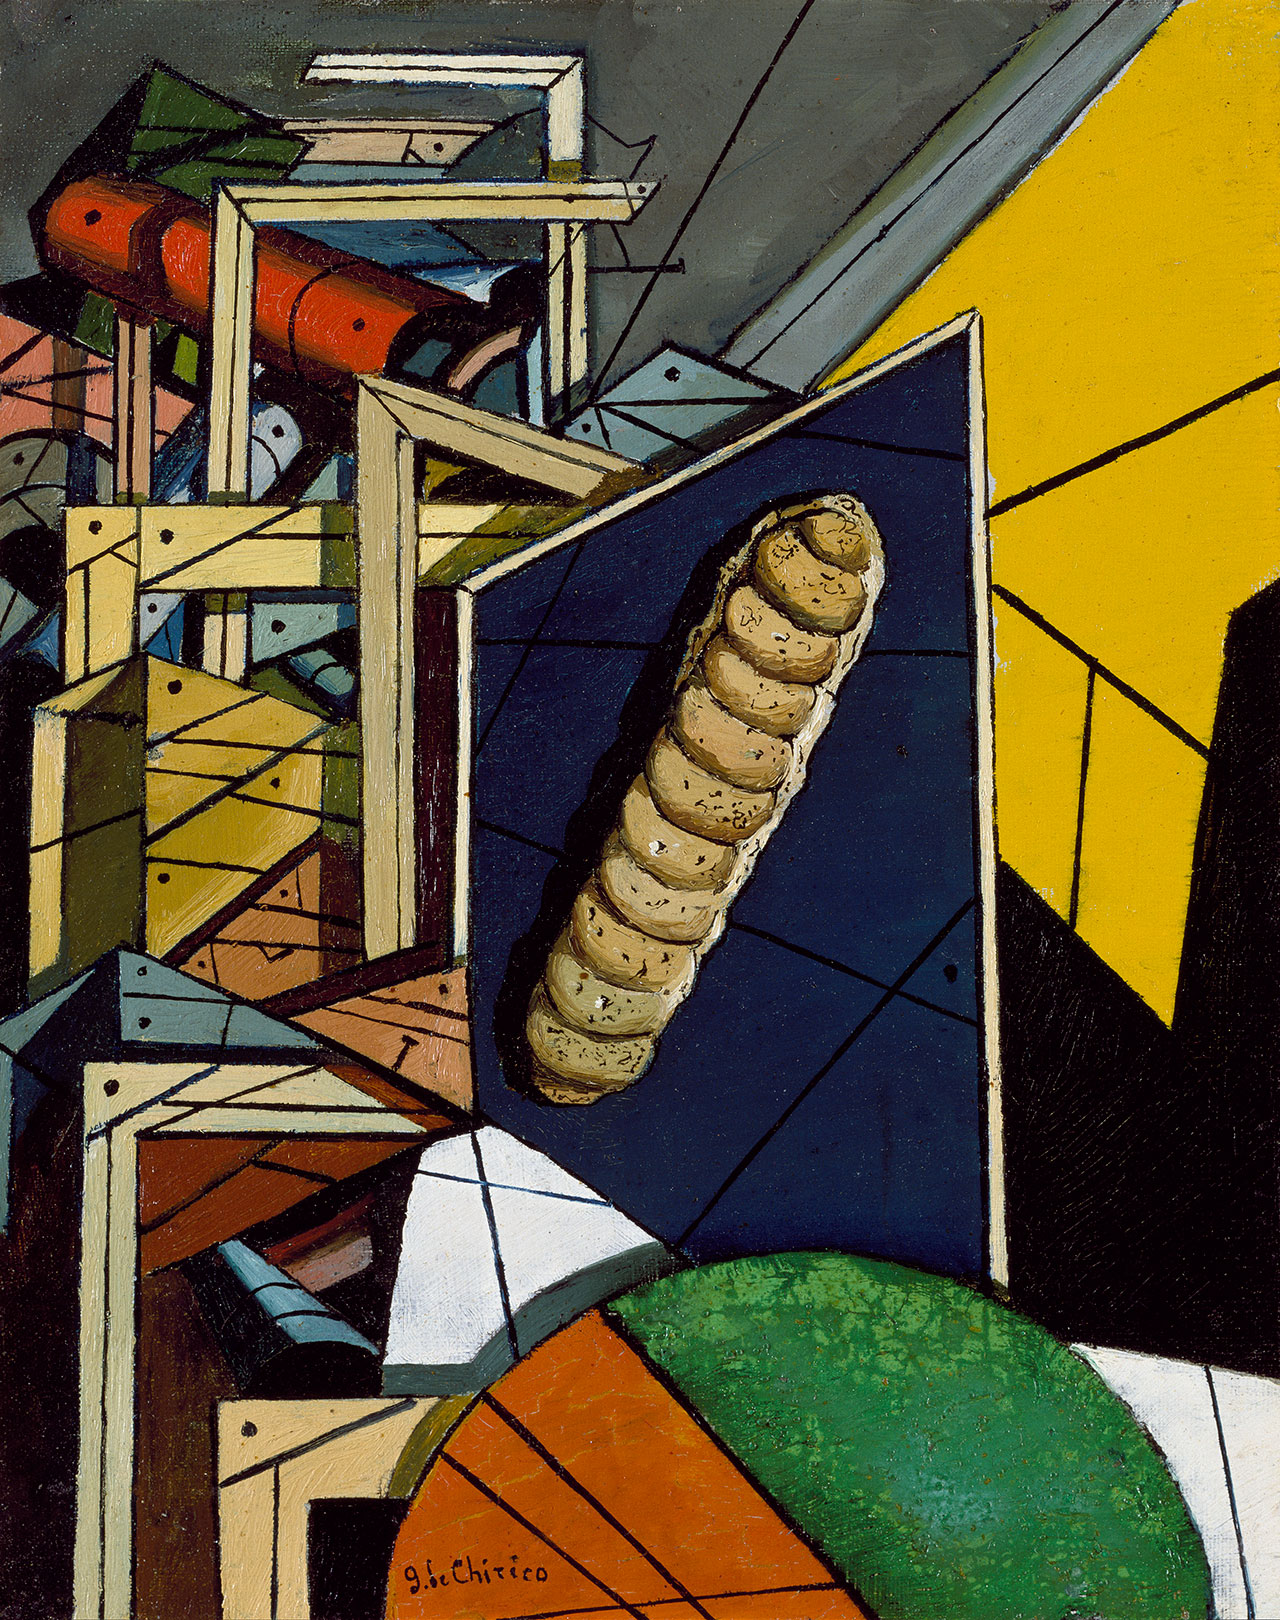 Giorgio De Chirico, La nostalgie de l'ingénieur, 1916, oil on canvas, 33,7 x 24 cm. Chrysler Museum of Art, Norfolk © Giorgio De Chirico by SIAE 2018.